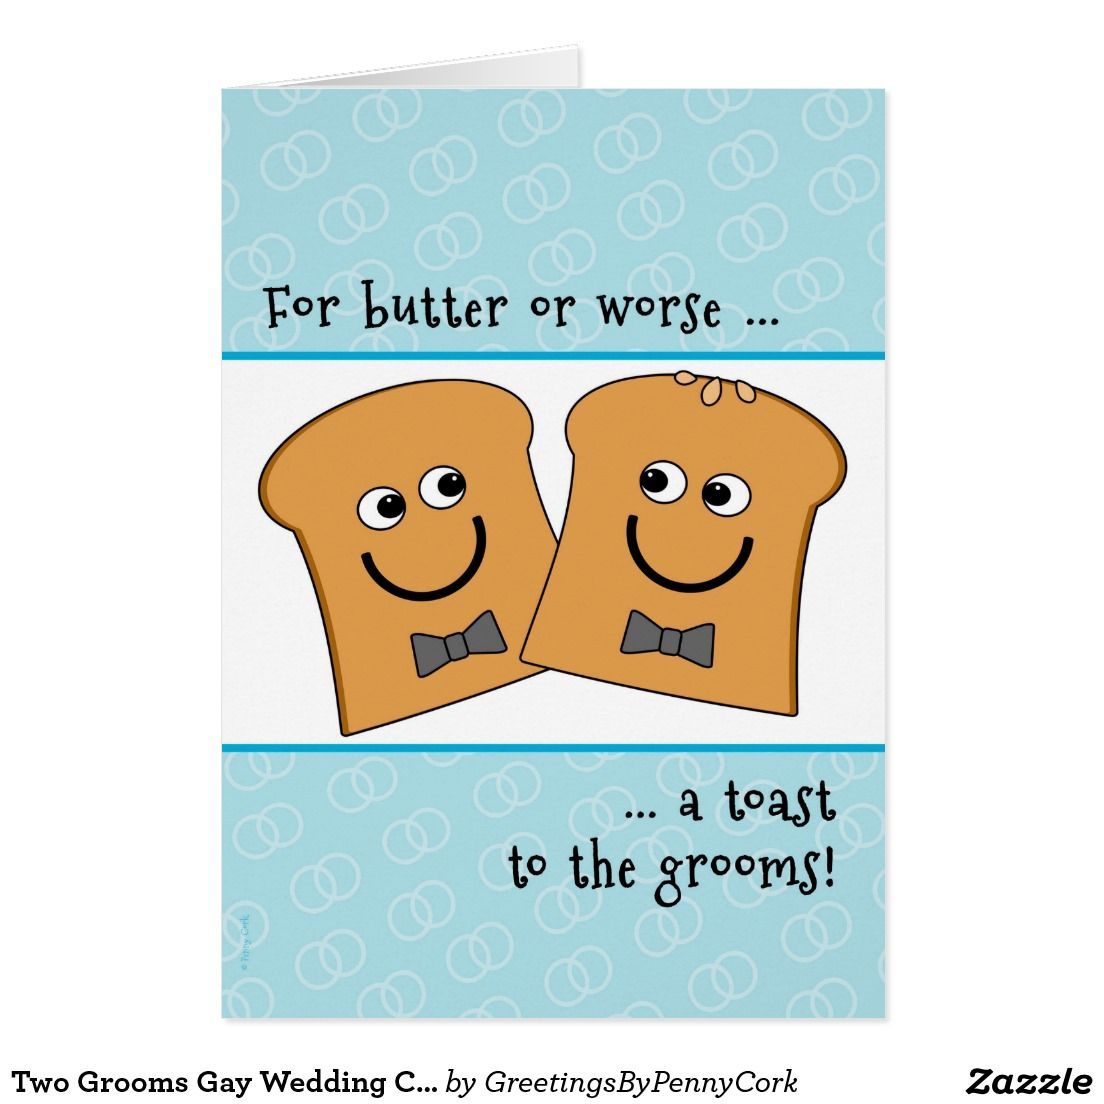 Two Grooms Gay Wedding Congratulations Funny Toast Card ...